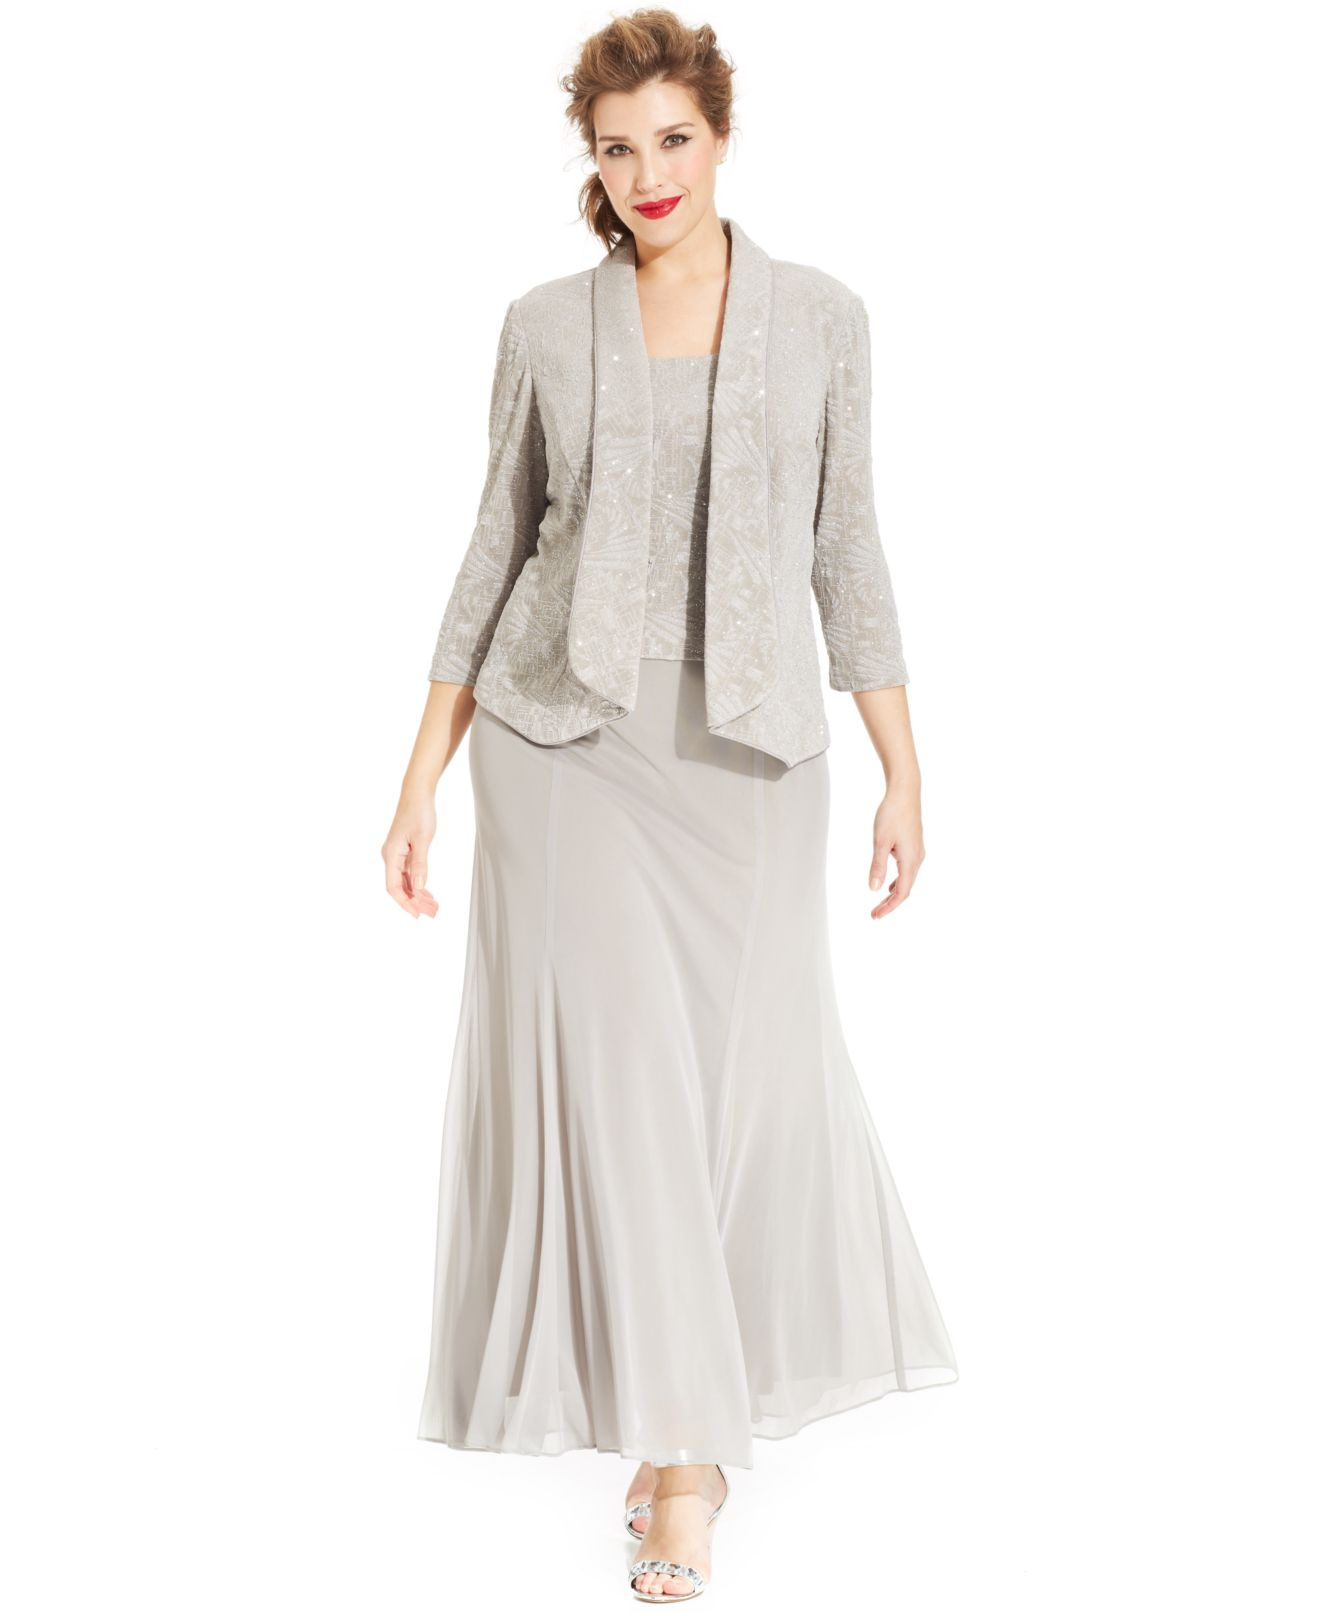 Alex Evenings Plus Size Glitter Jacquard Dress And Jacket in Gray - Lyst